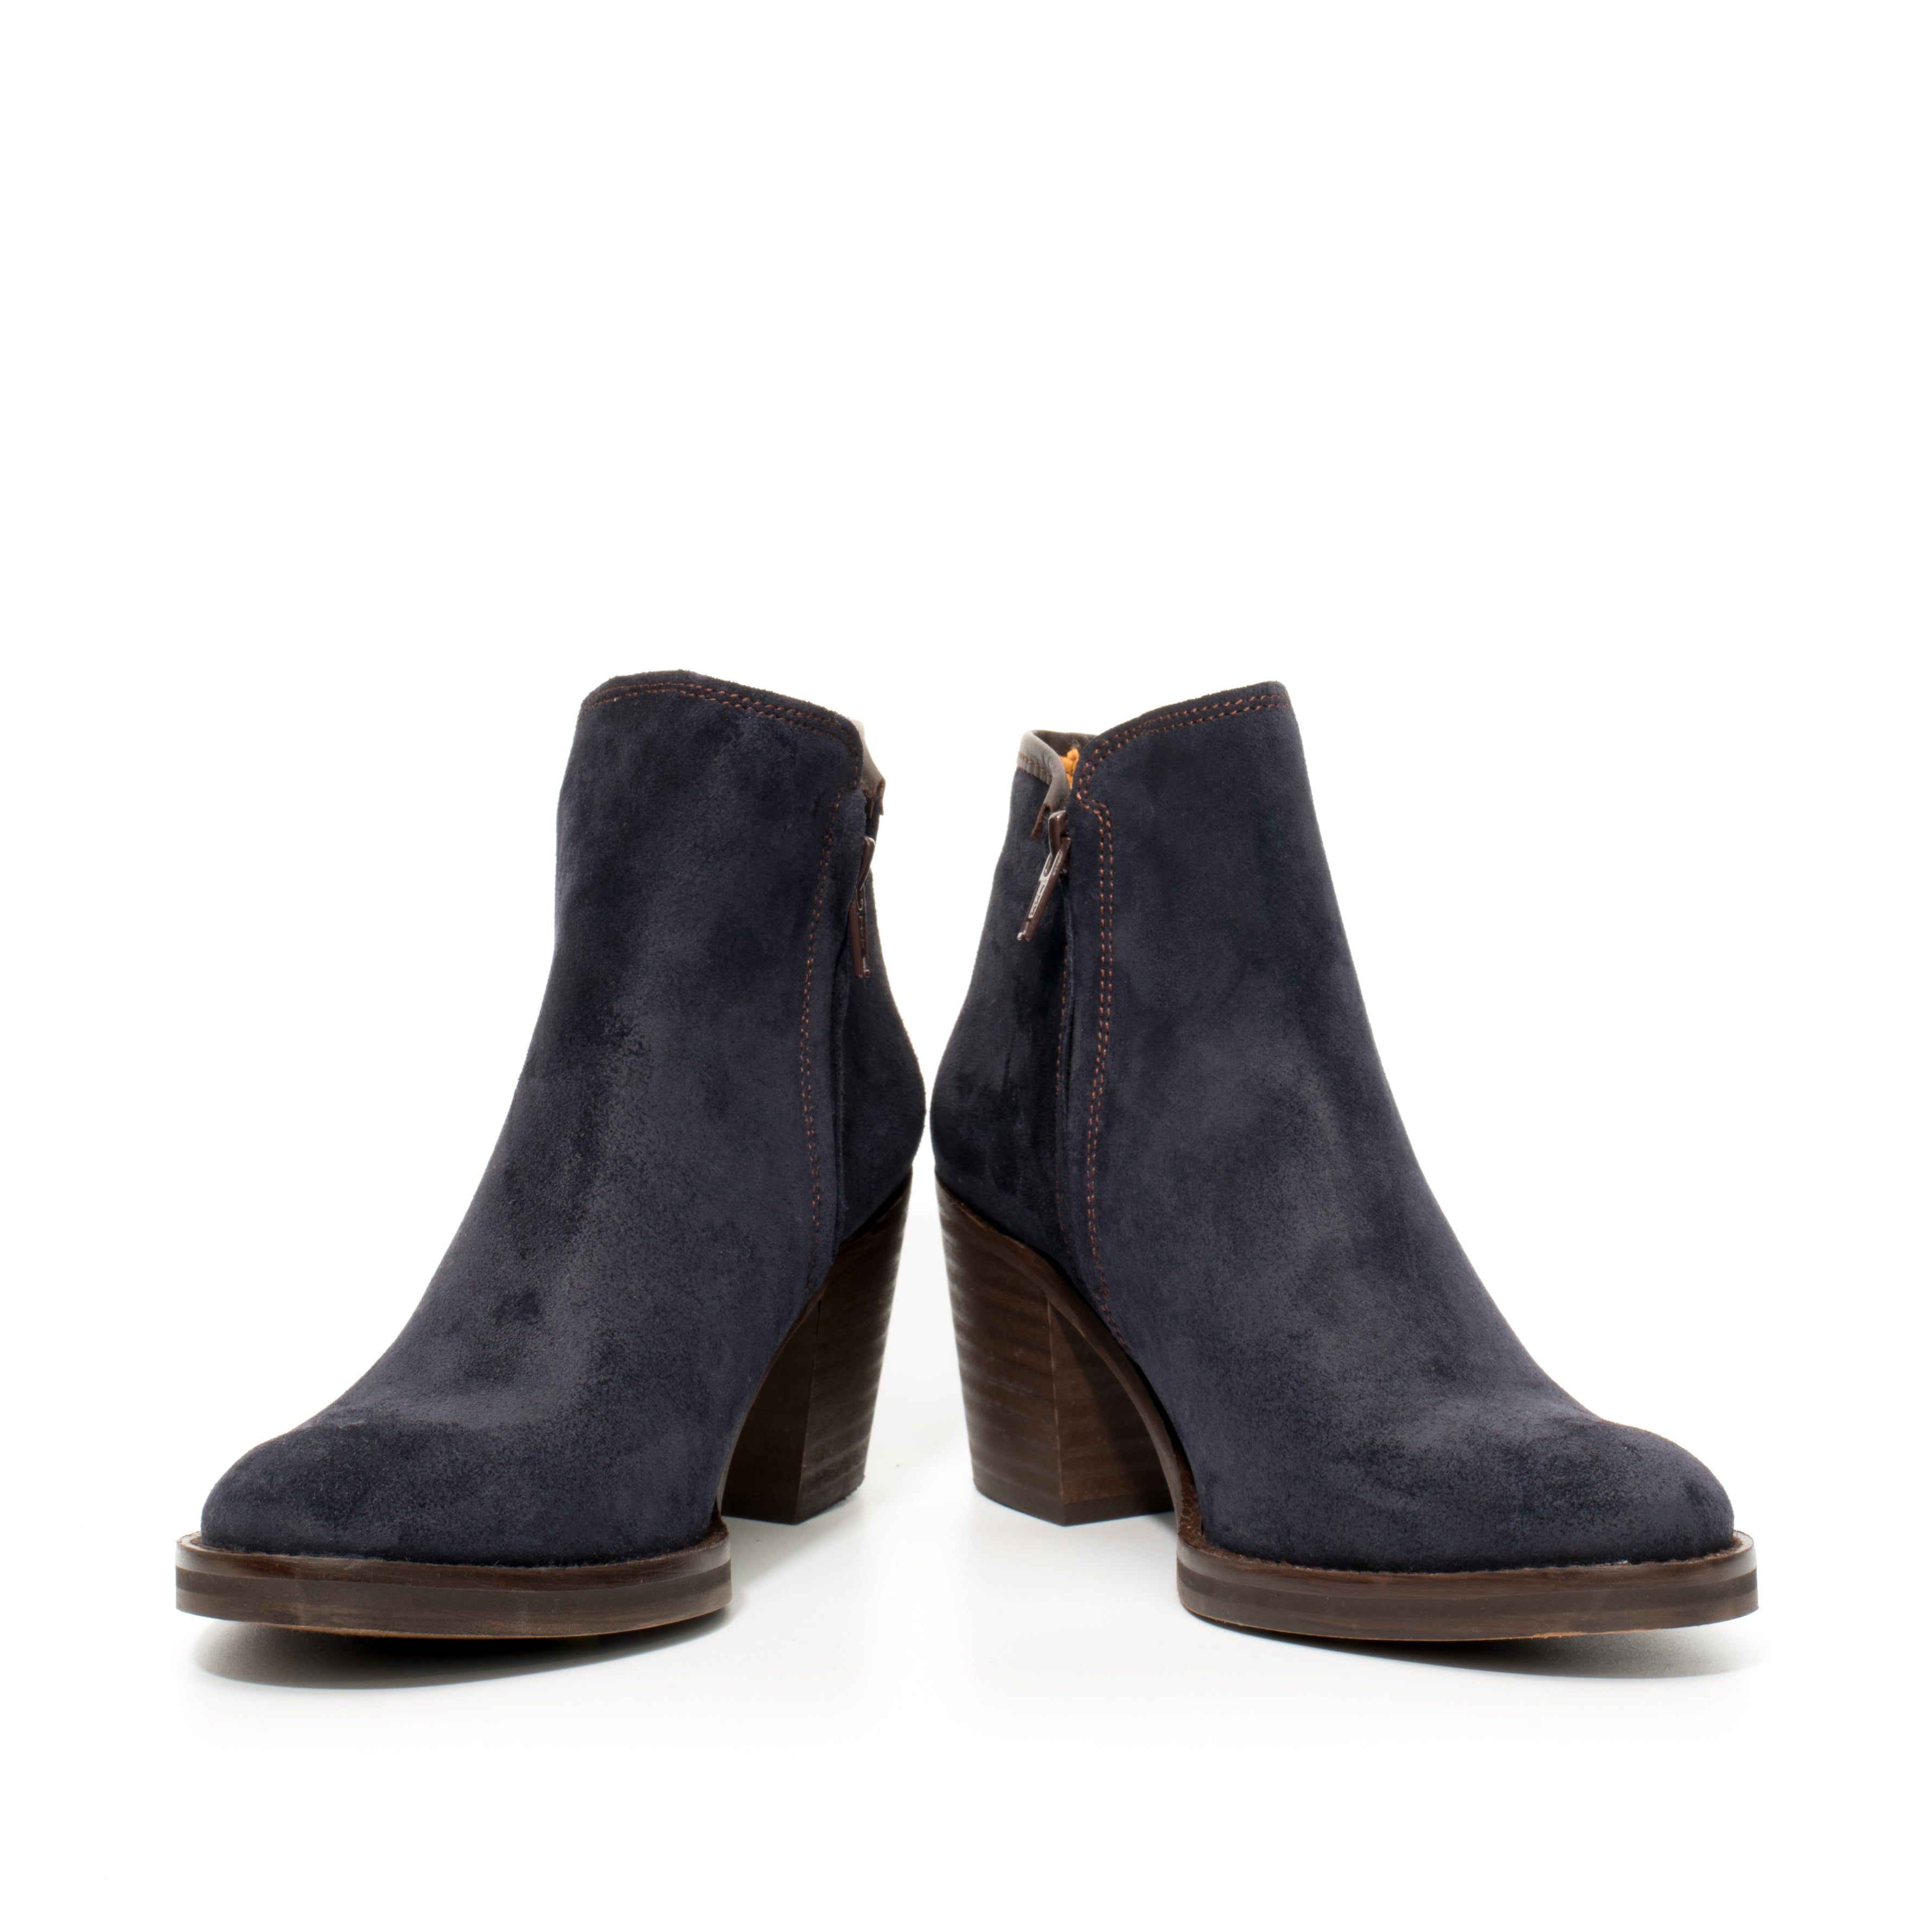 Suede leather boots UK